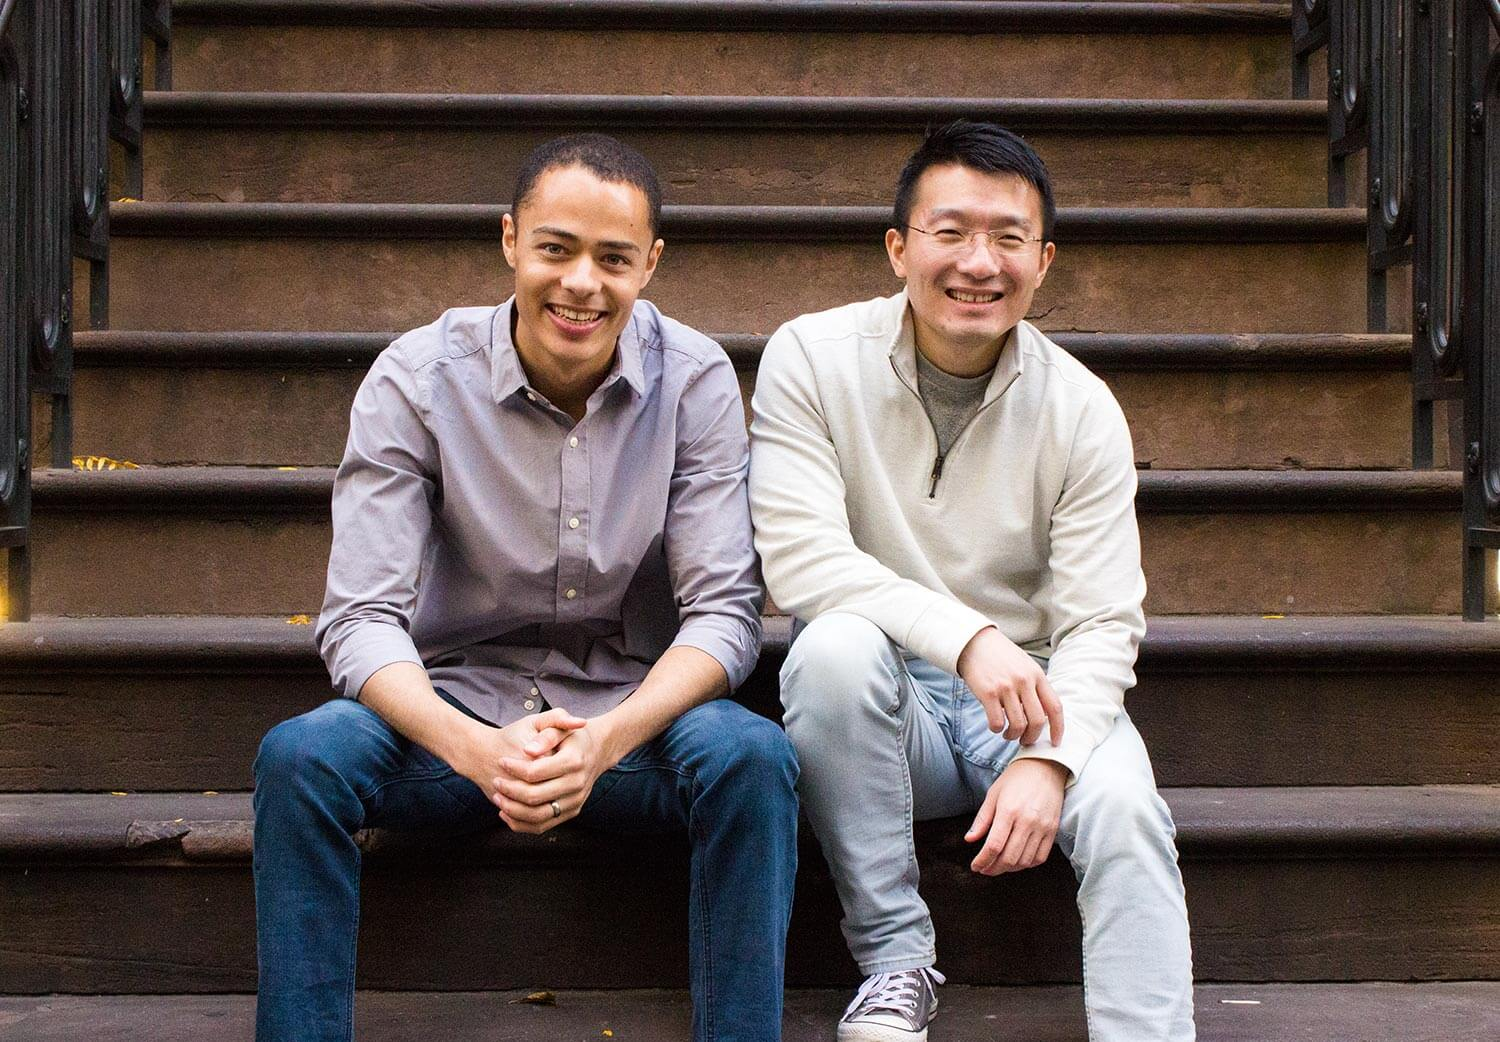 Amino Apps founders Ben Anderson and Yin Wang.